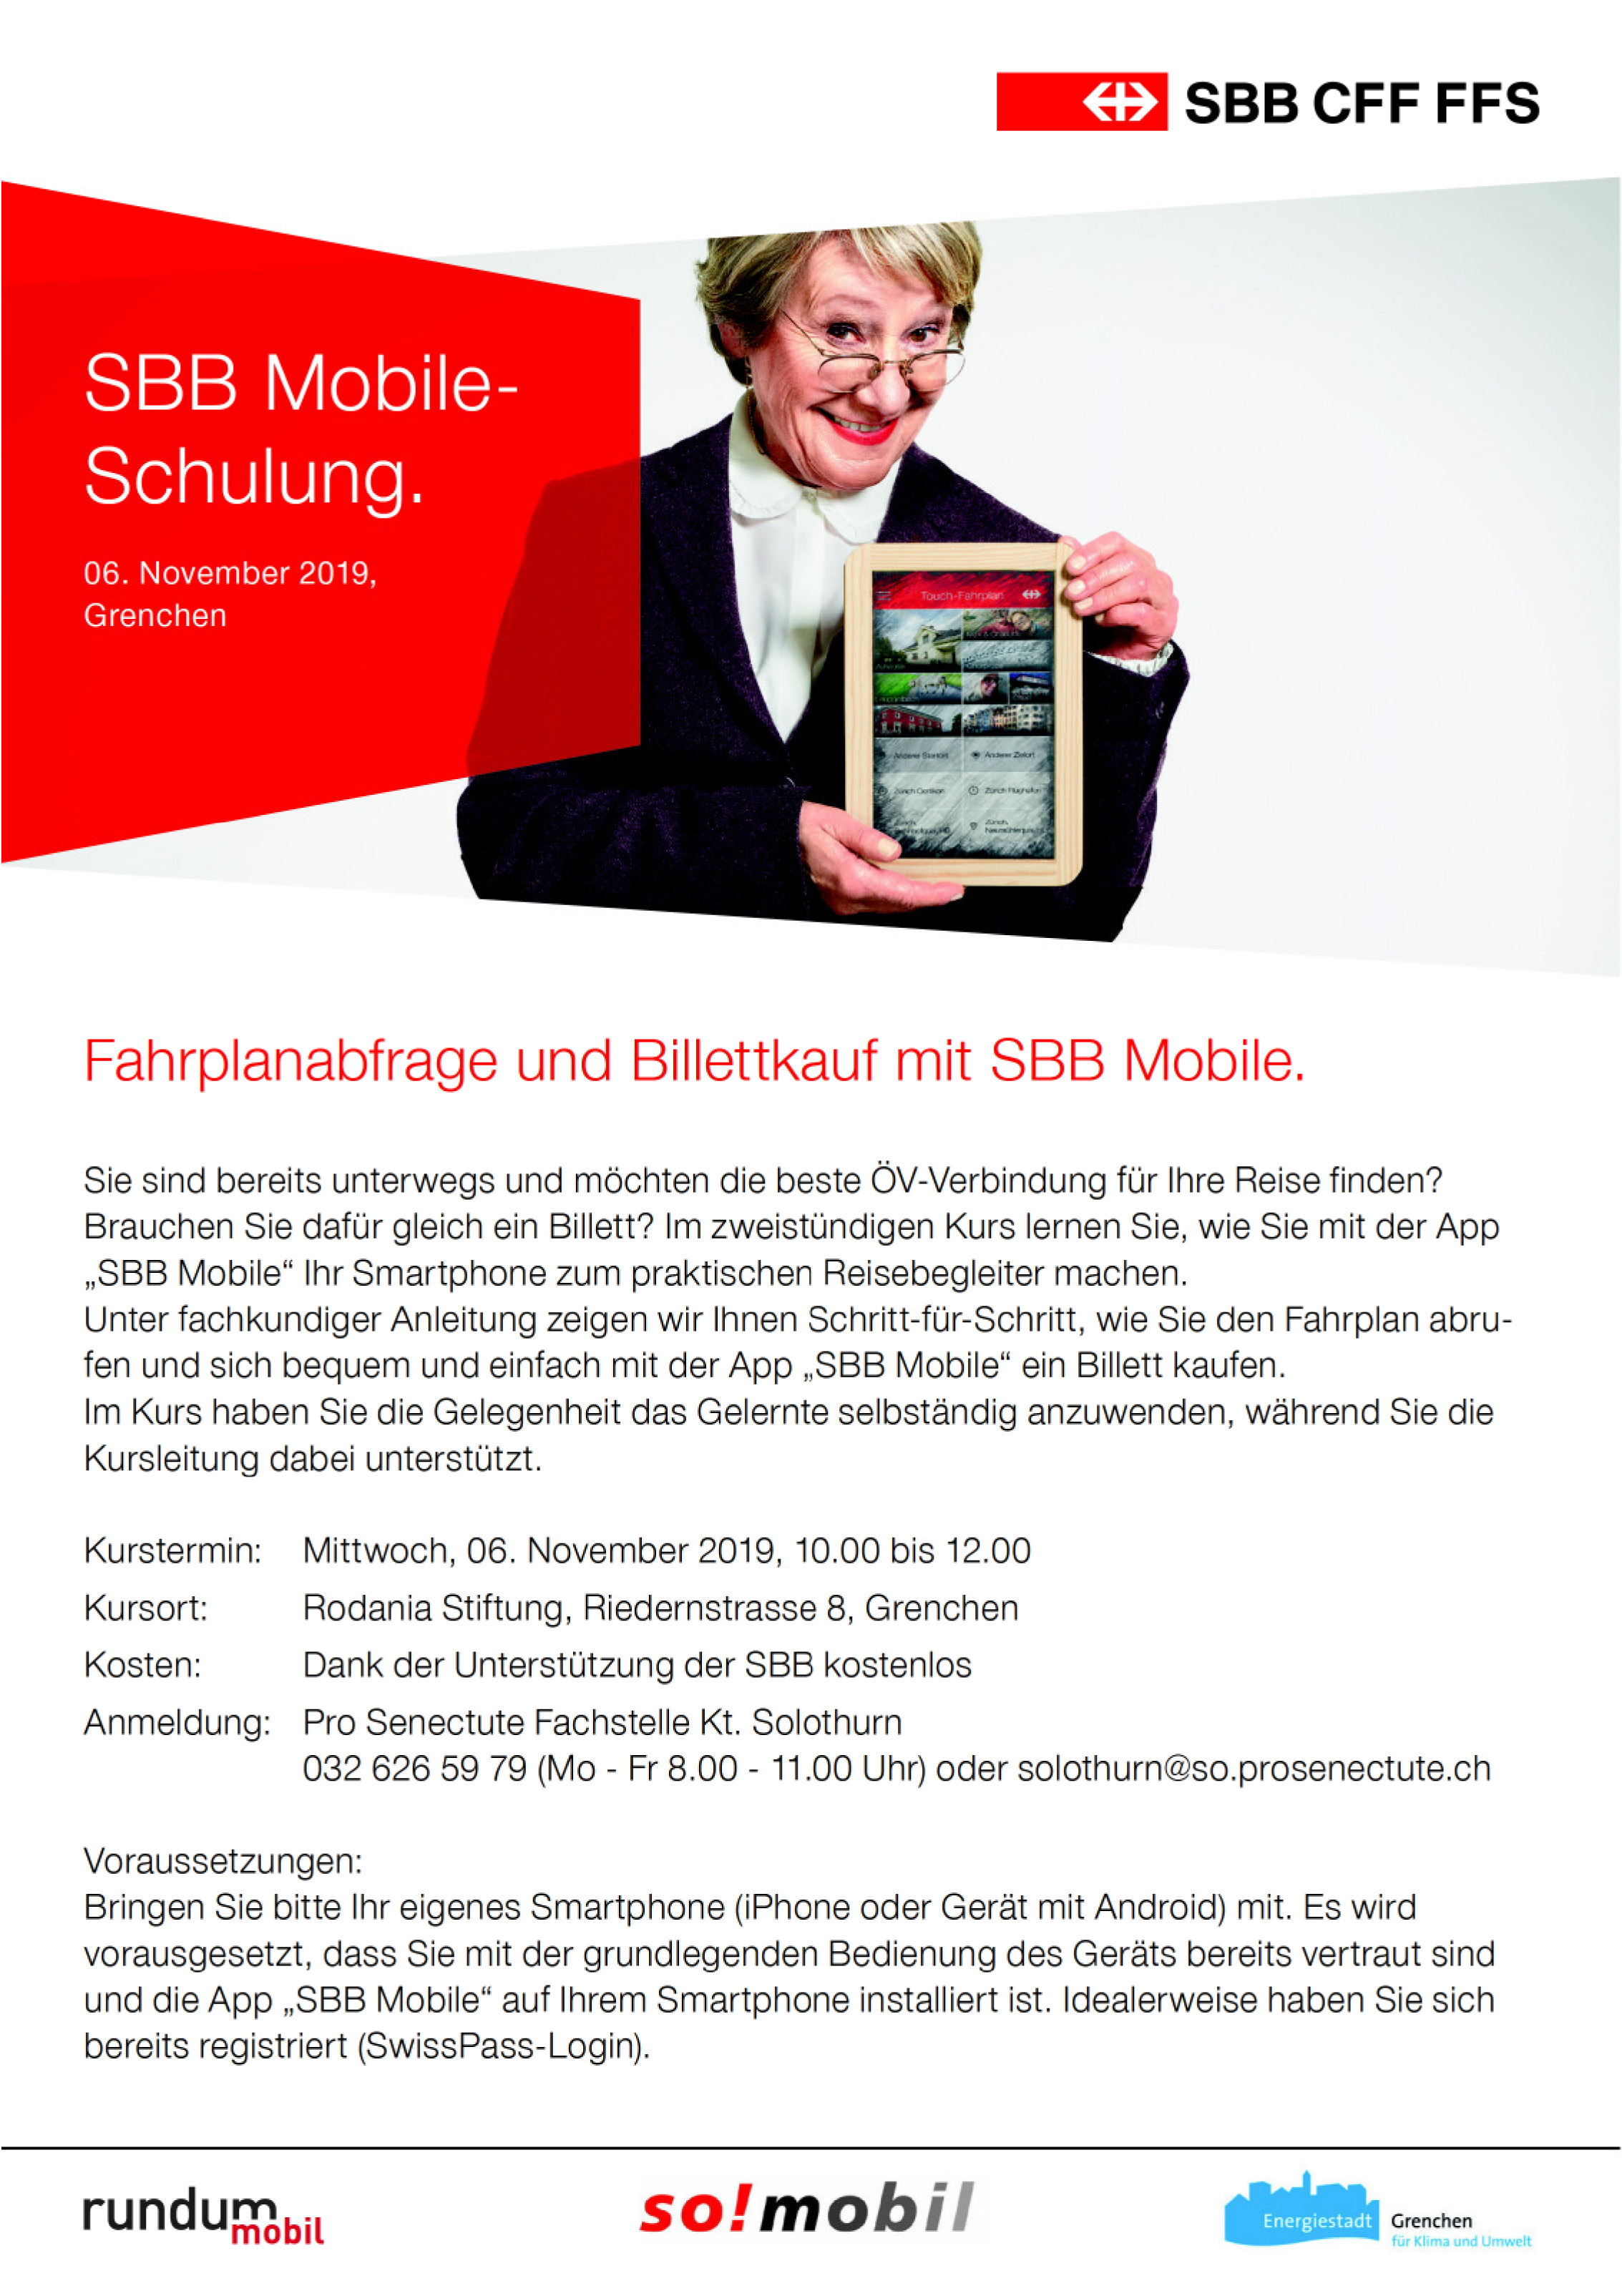 SBB Mobile-Schulung Grenchen